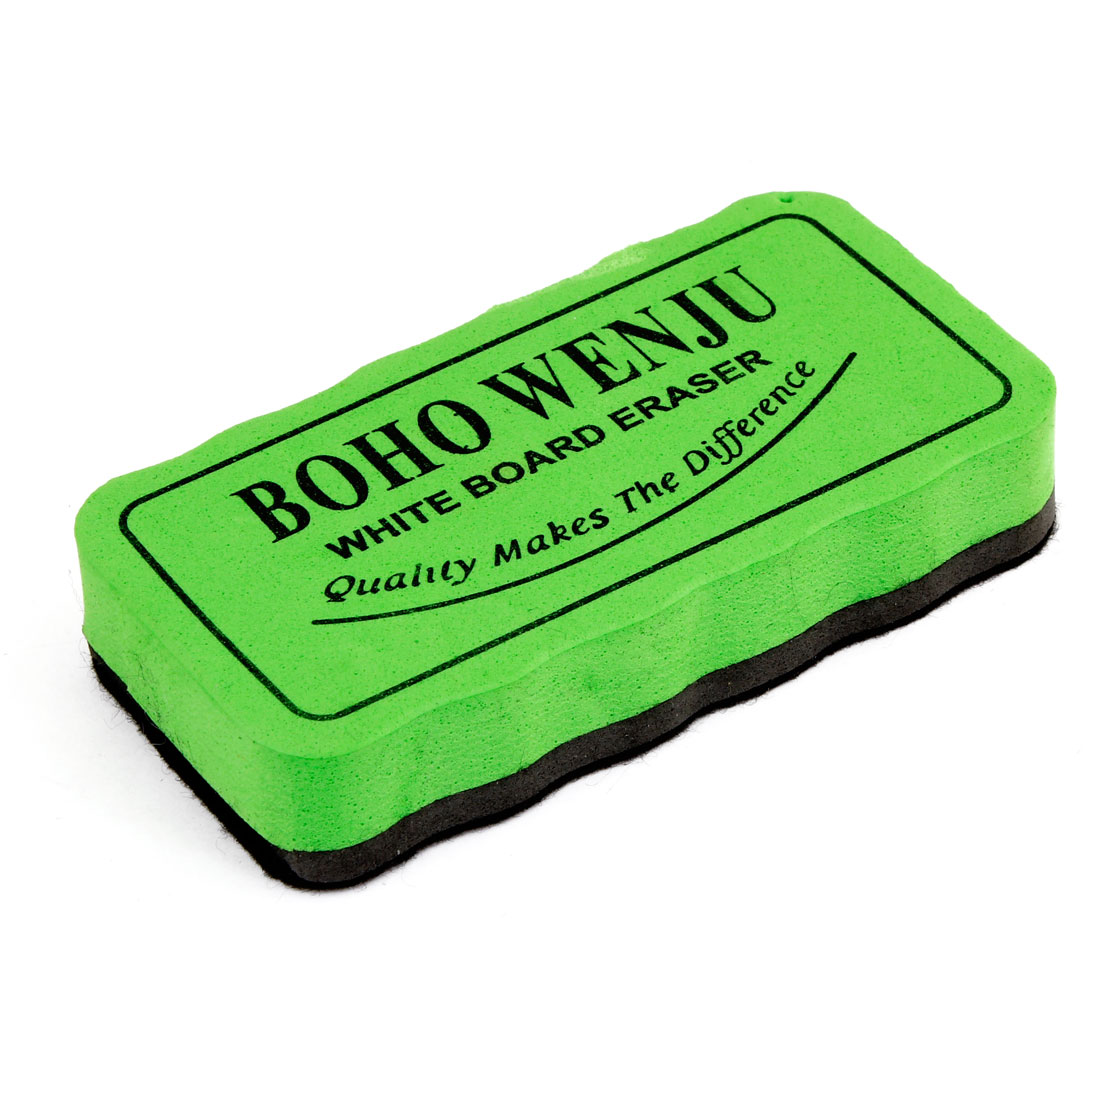 Magnetic Rectangular Green Black Blackboard Whiteboard Cleaning Eraser